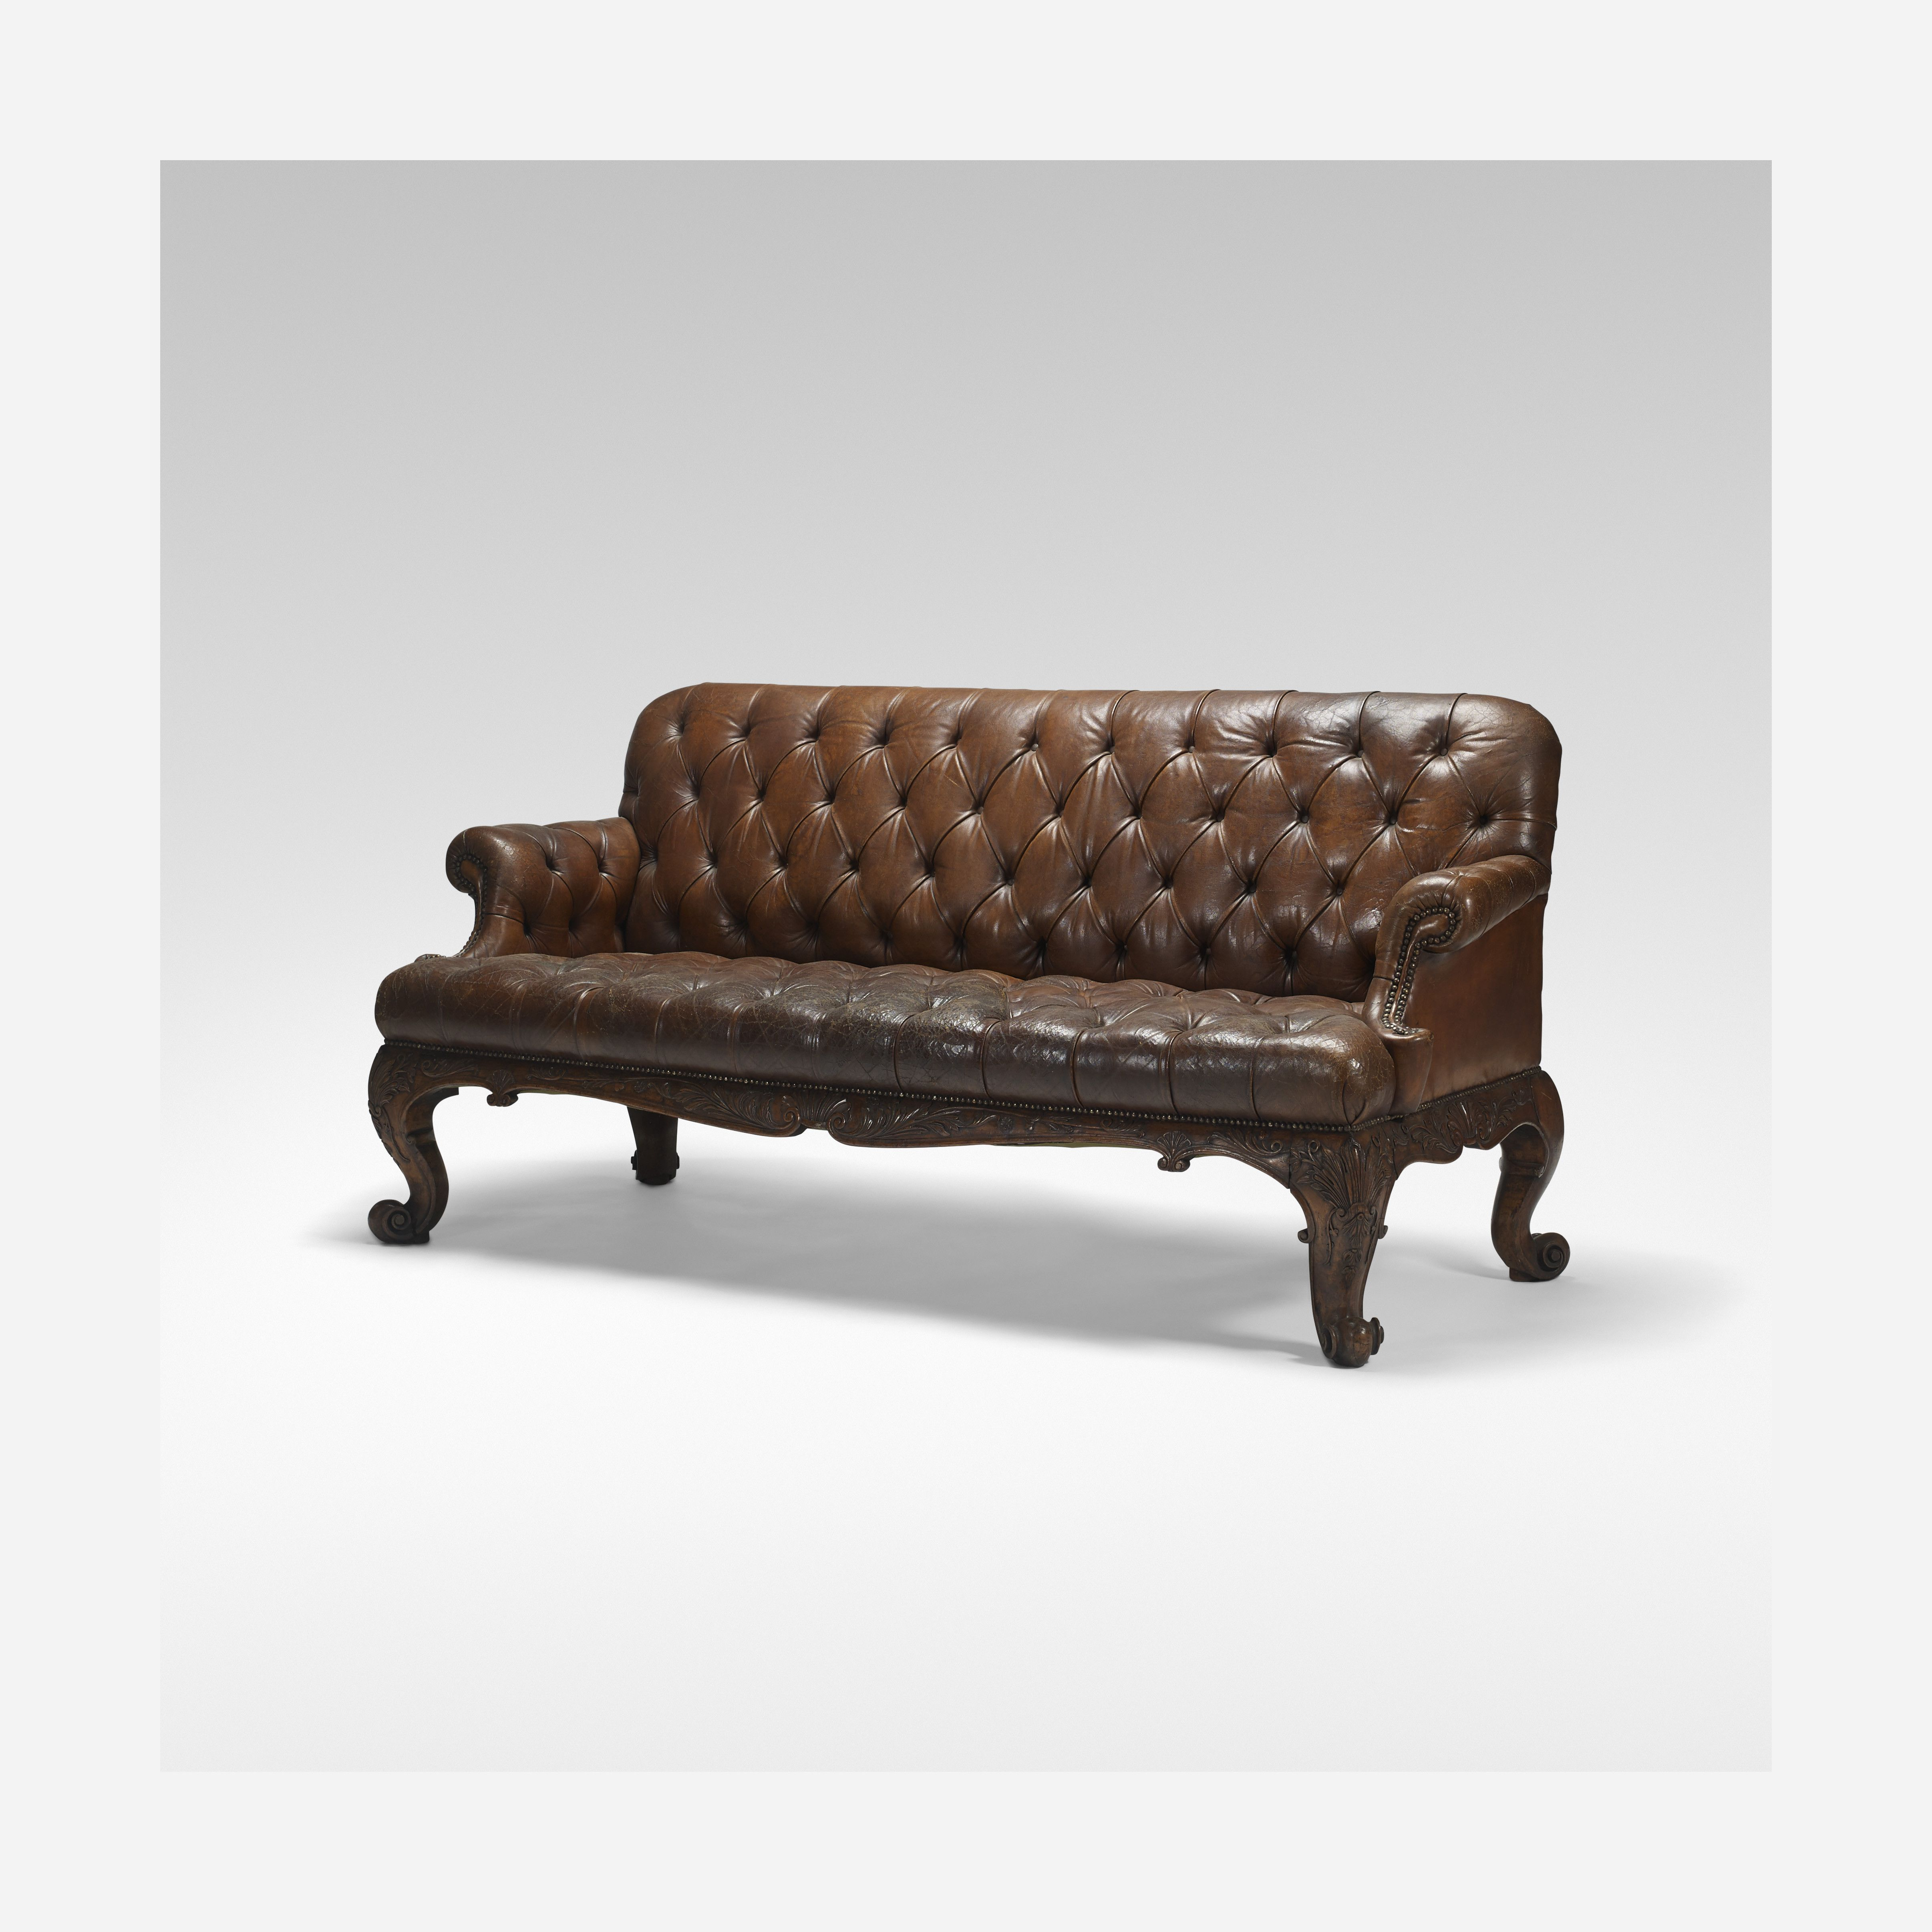 Victorian Chesterfield sofa c 1890 leather carved wood